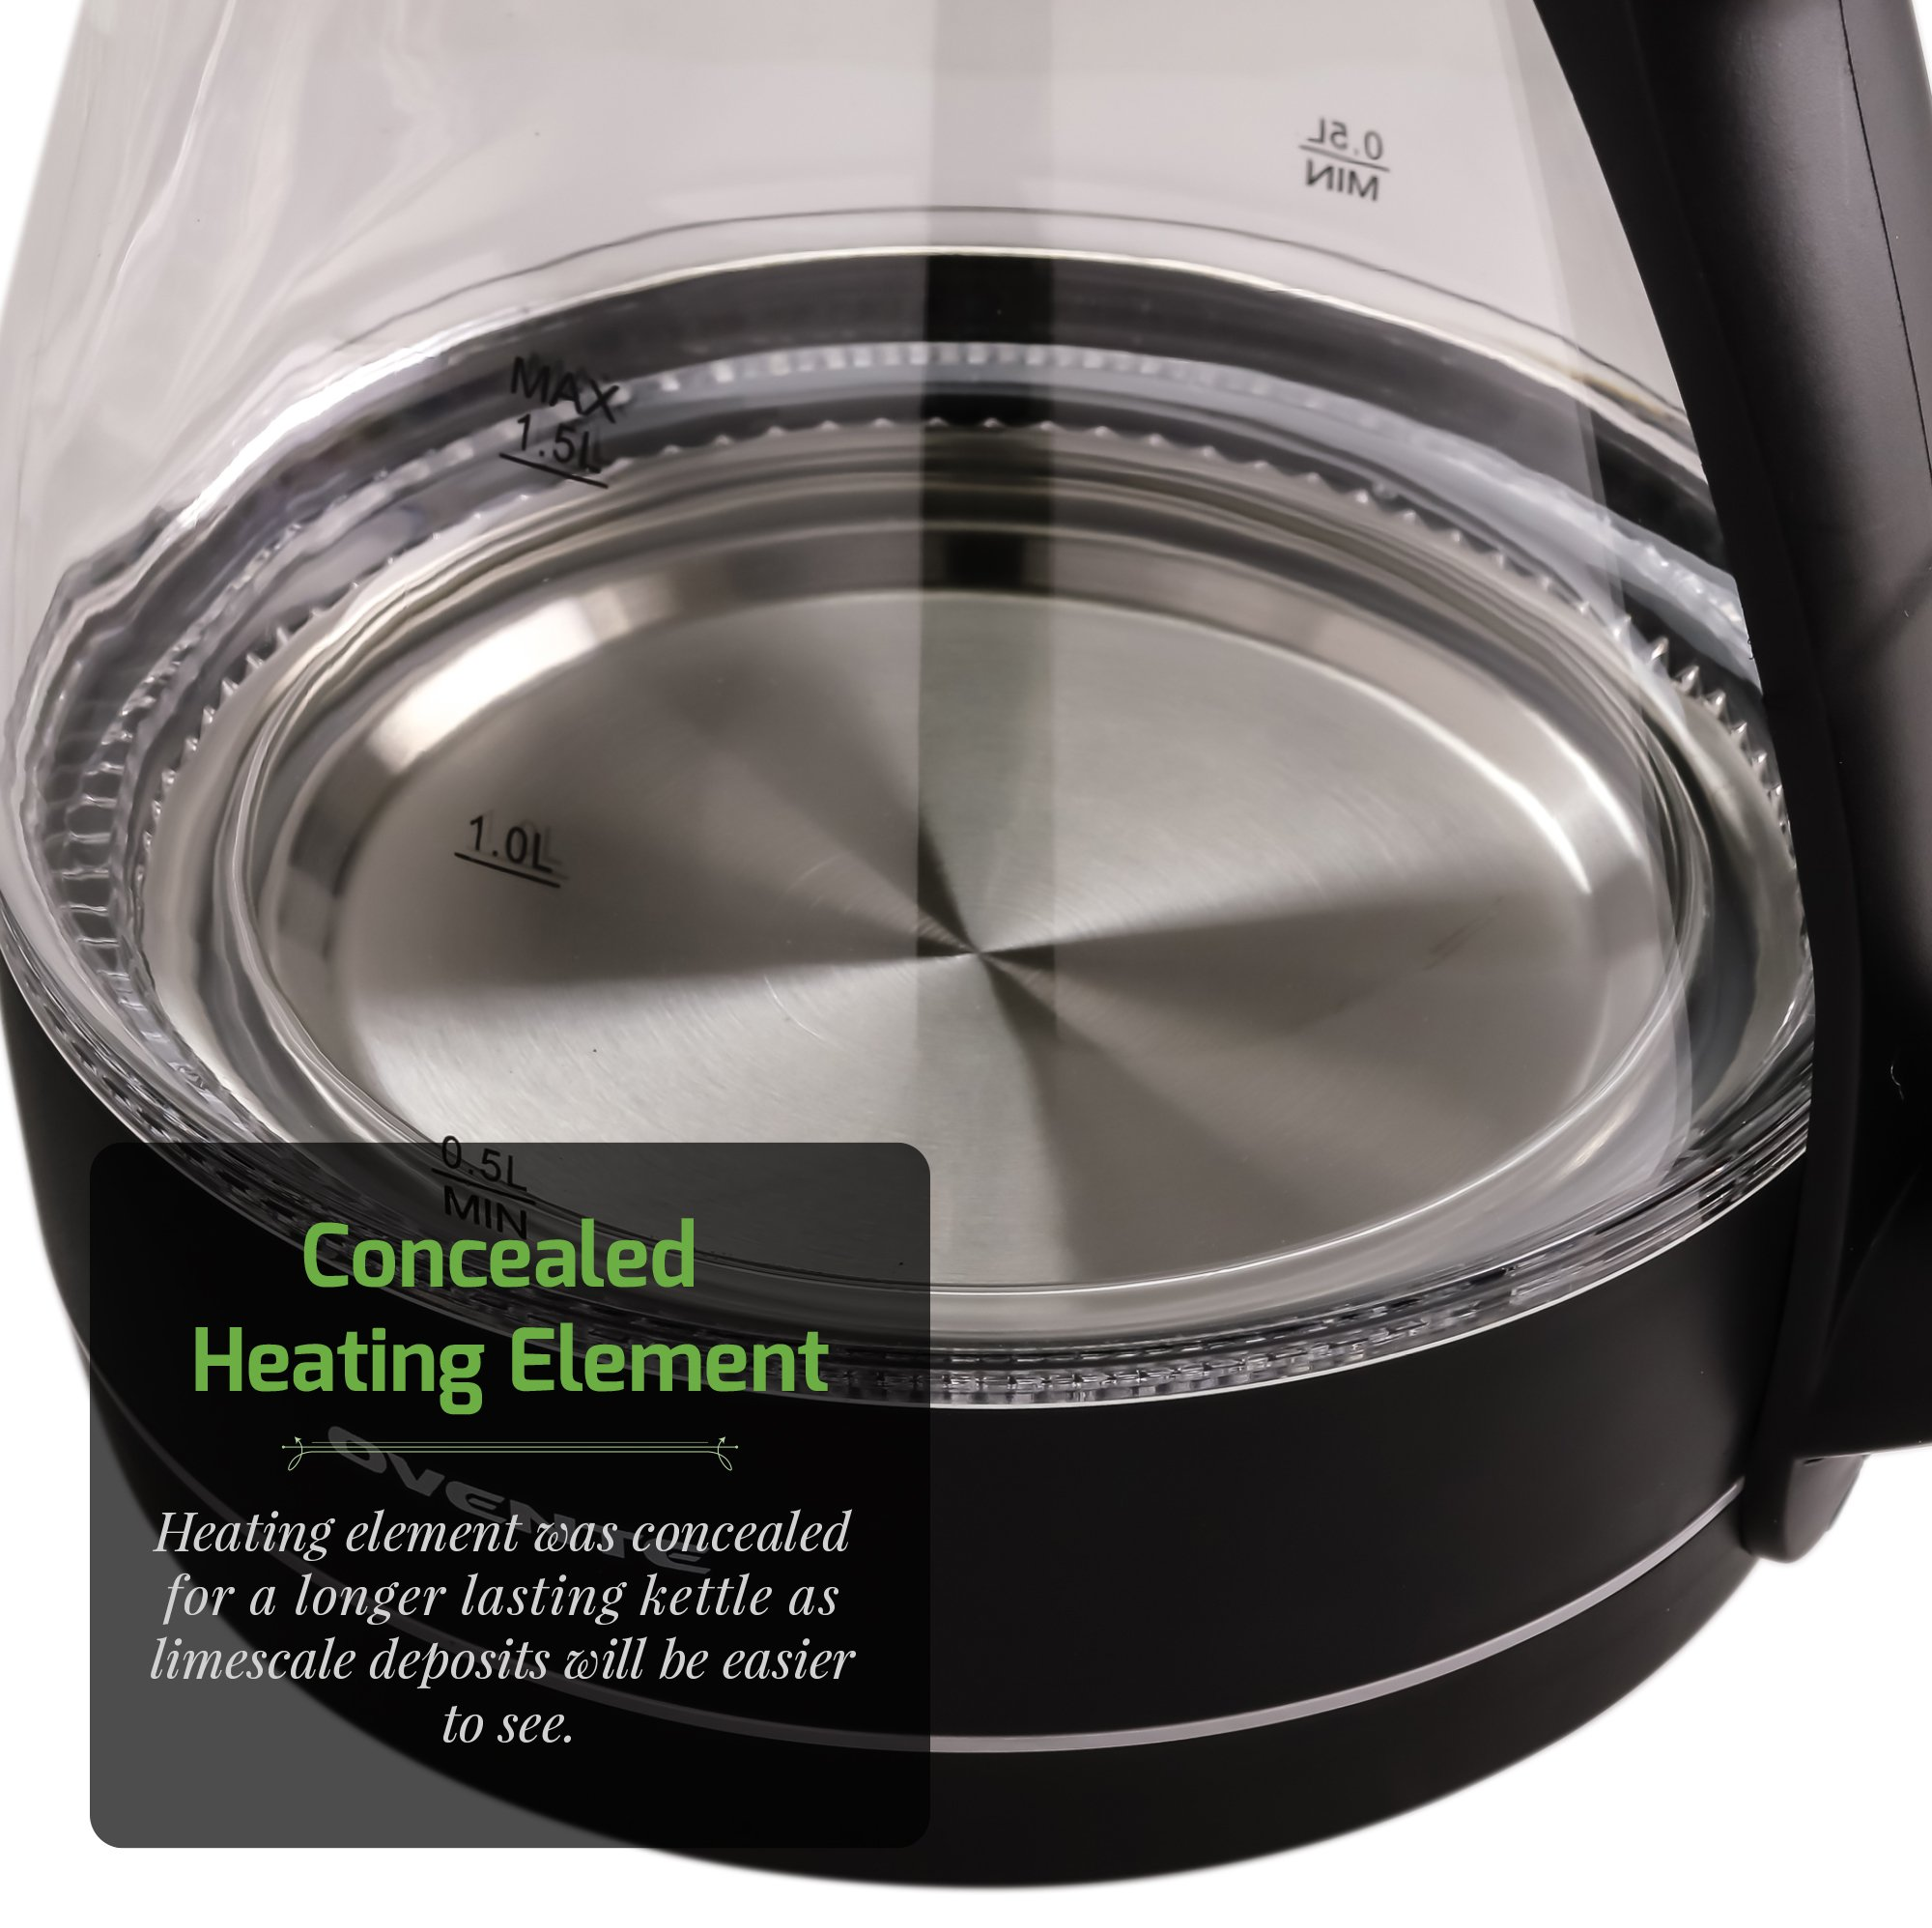 Ovente 1.5L BPA-Free Glass Electric Kettle, Fast Heating with Auto Shut-Off and Boil-Dry Protection, Cordless, LED Light Indicator, Black (KG83B) by Ovente (Image #4)